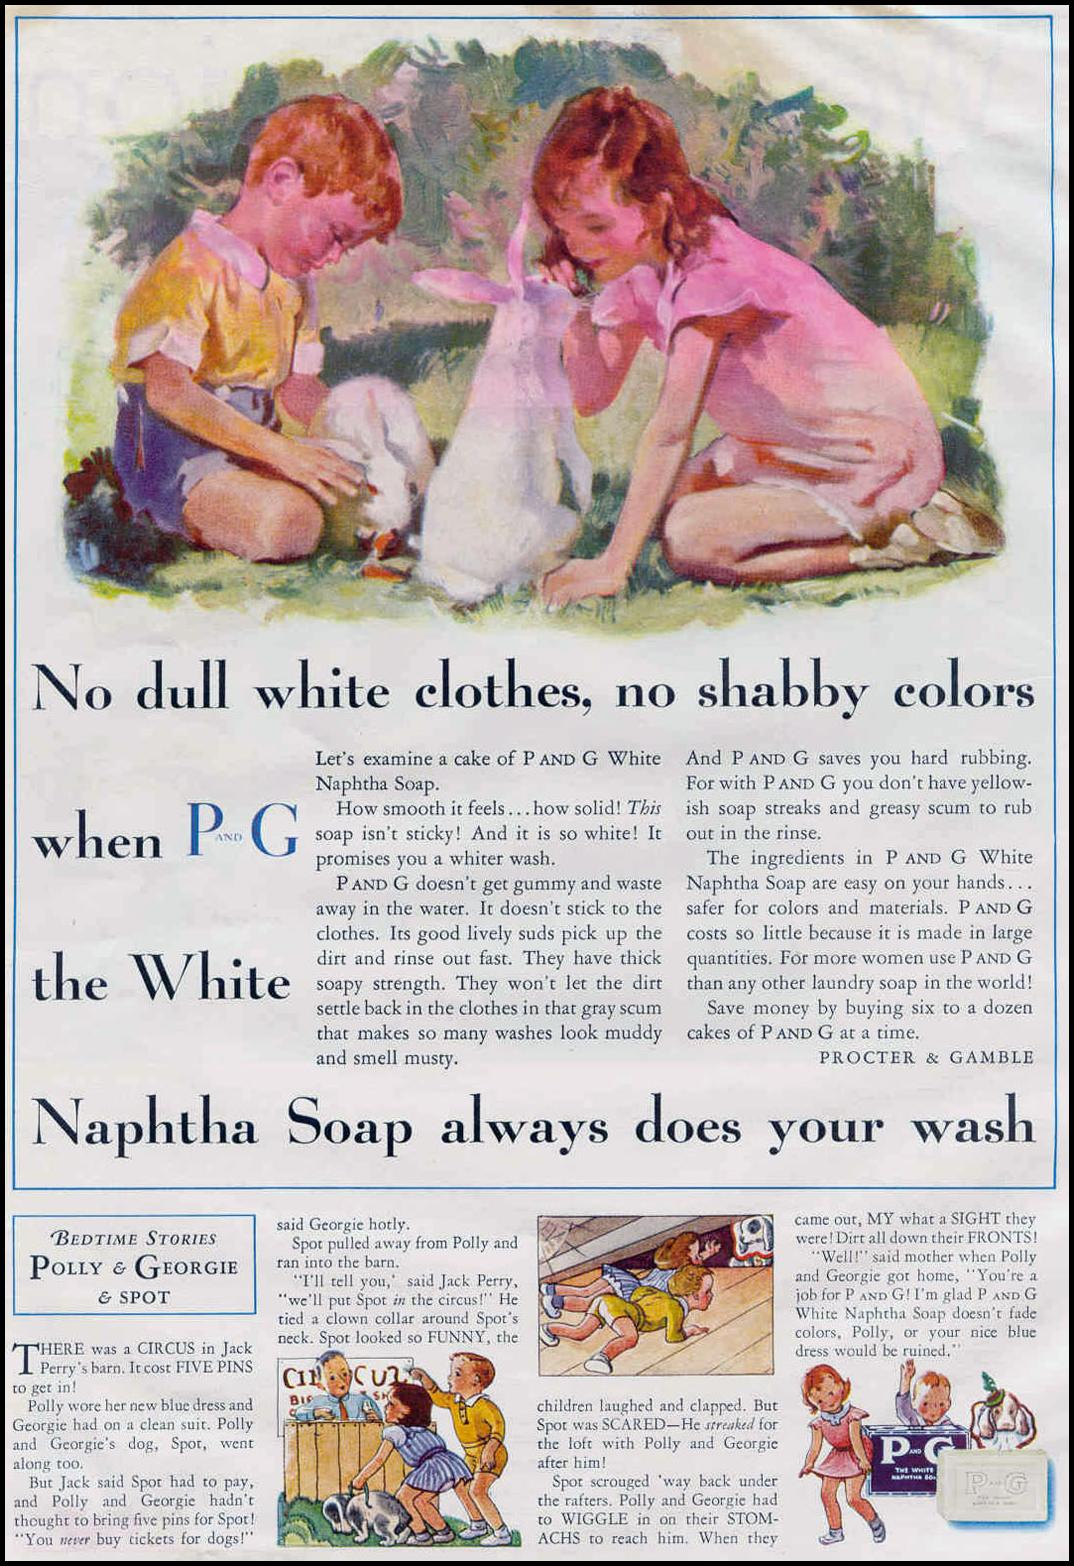 P AND G WHITE NAPTHA SOAP